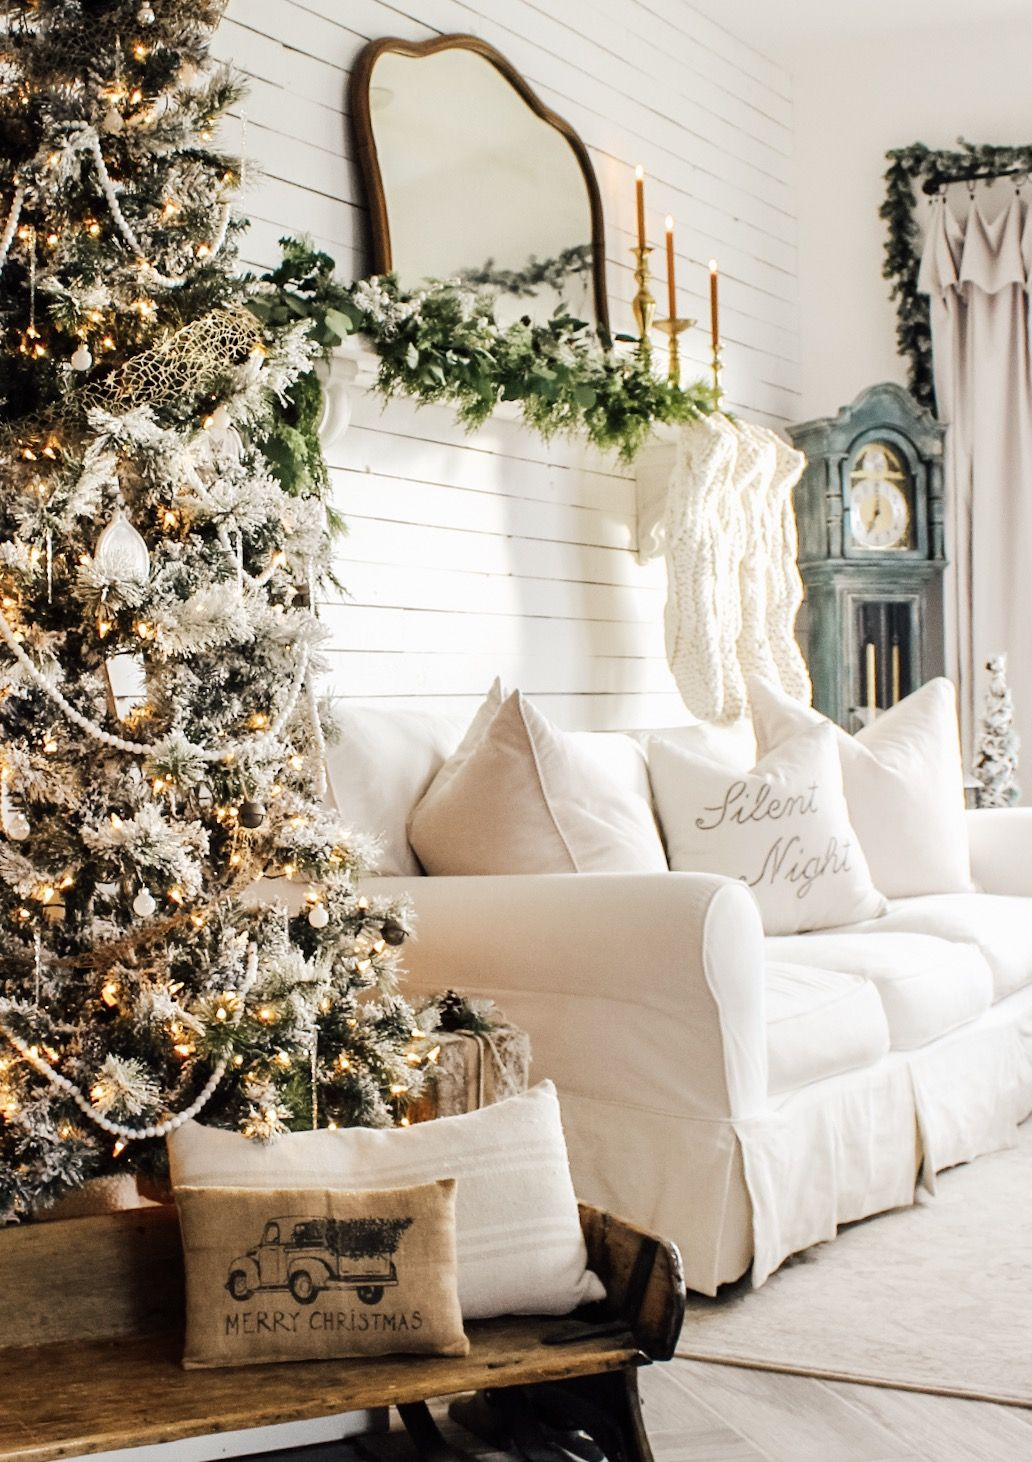 Our DIY cottage is looking more and more festive all the time!  #fletchercreekcottage #cottagechristmas #christmasdecor #cozylivingroom #christmasmantle